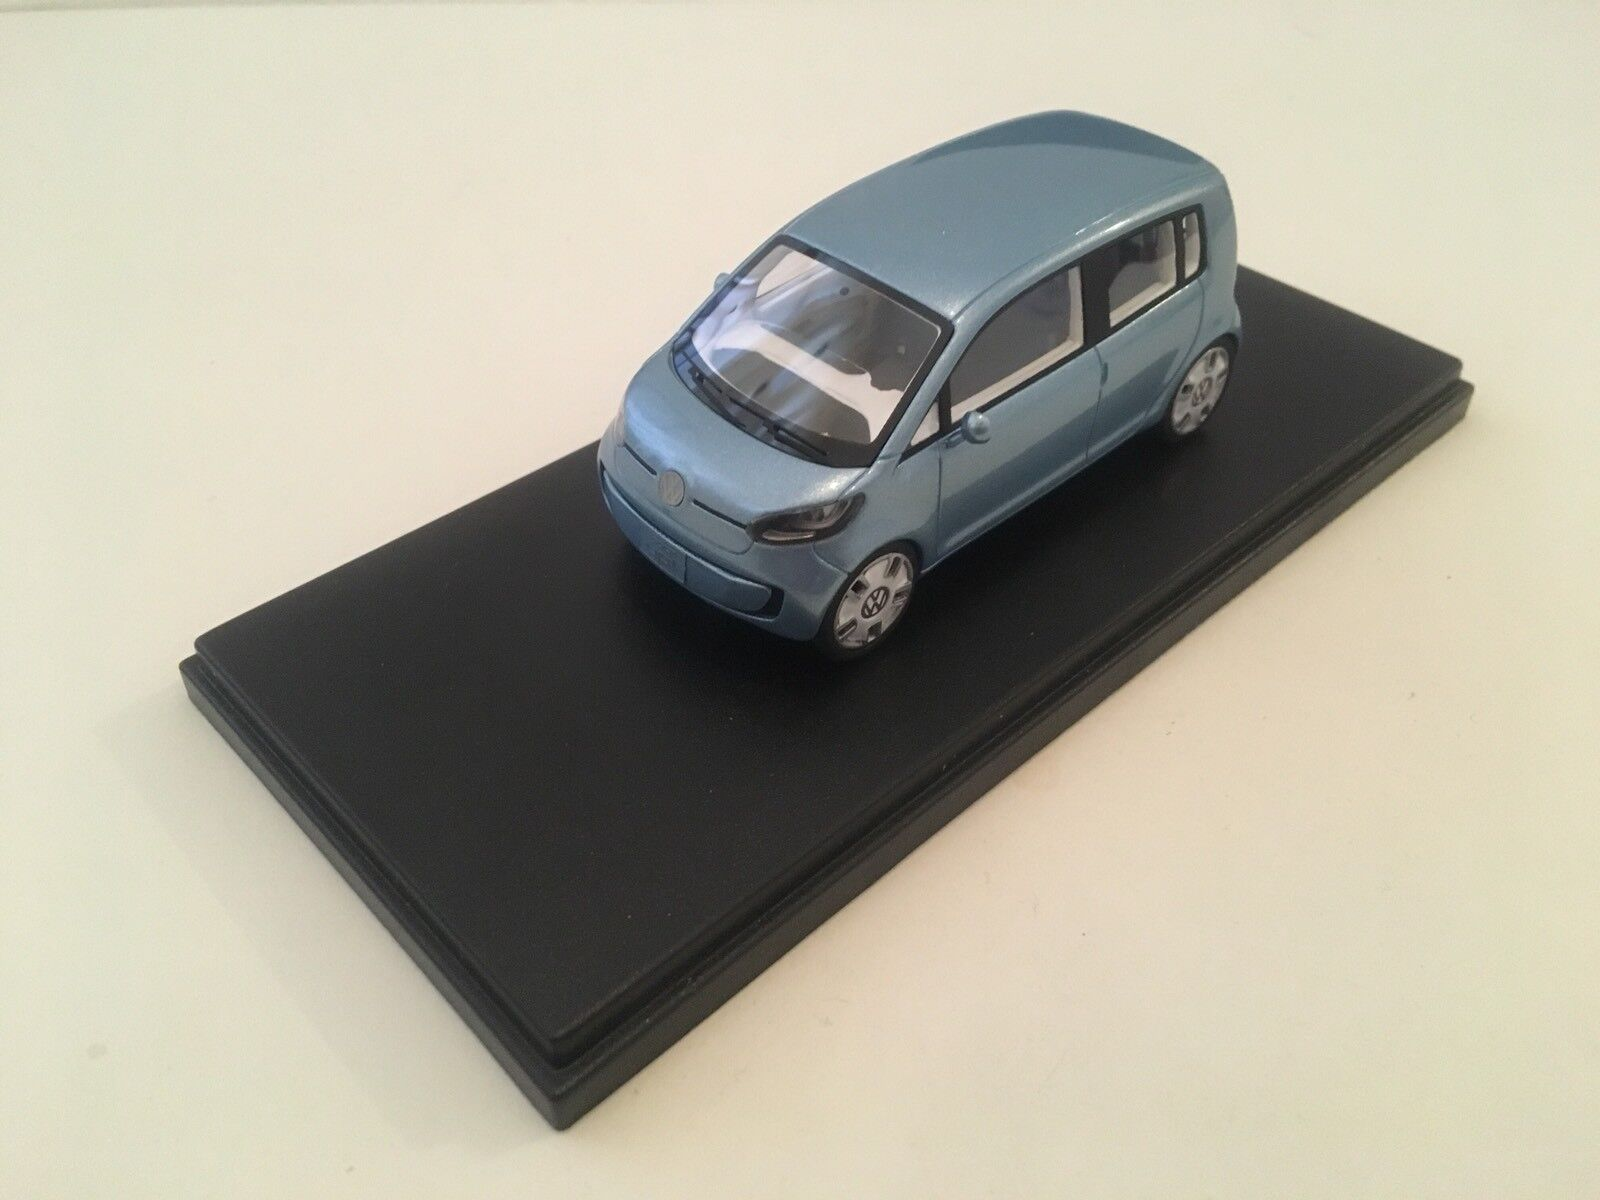 VW Space up  - 1 43 scale - Looksmart